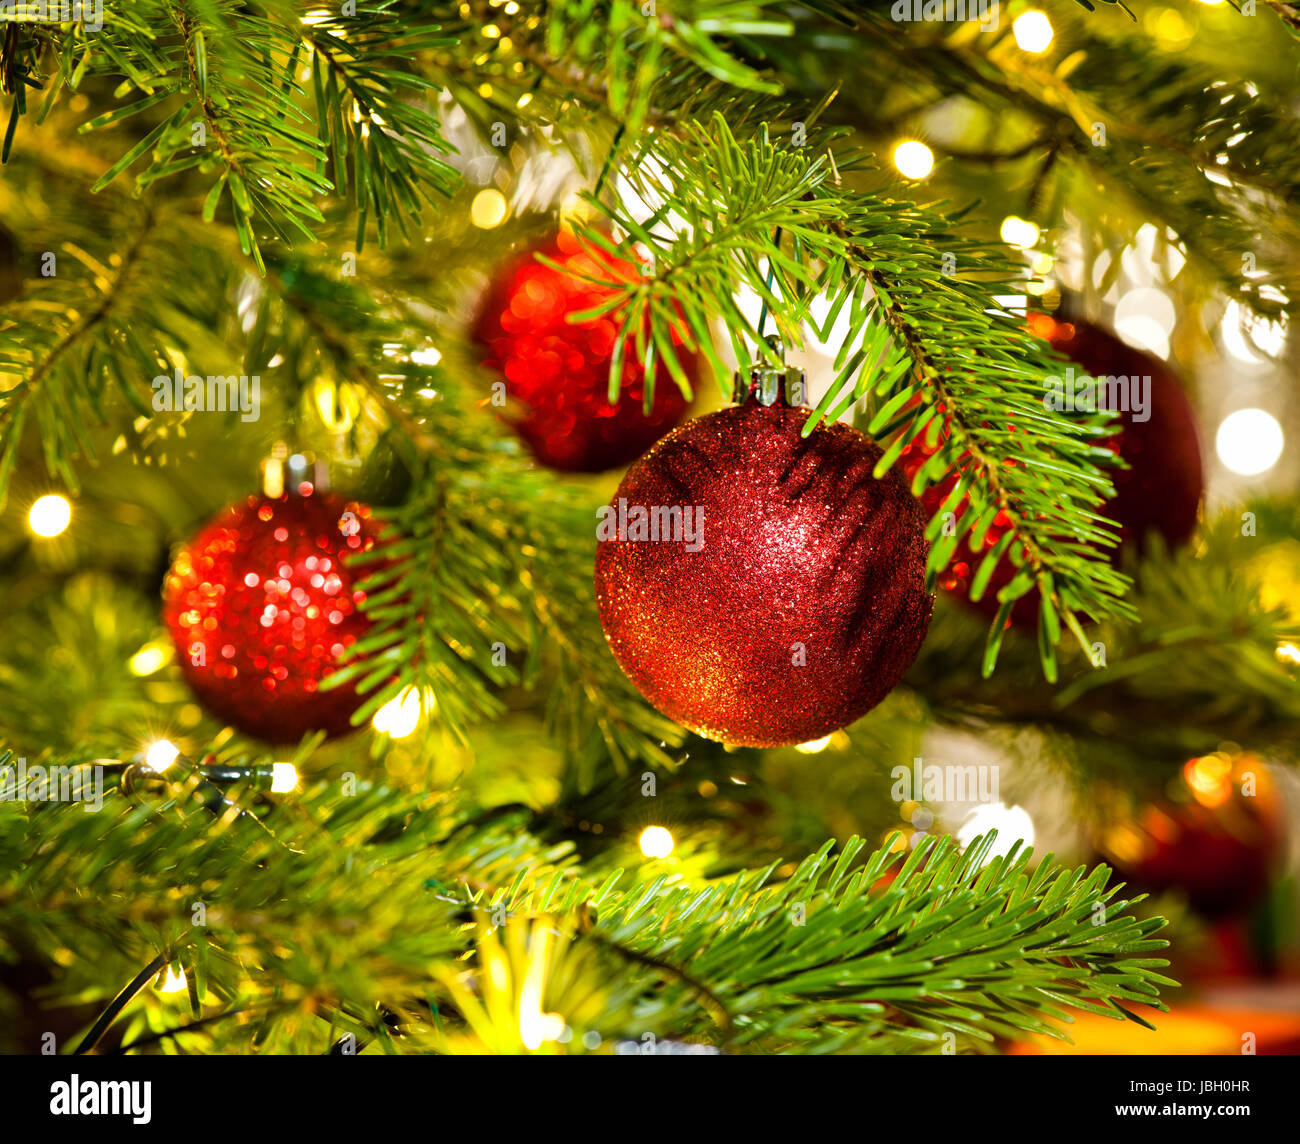 Bauble Ornament In A Real Christmas Tree In Bright Color Stock Photo Alamy